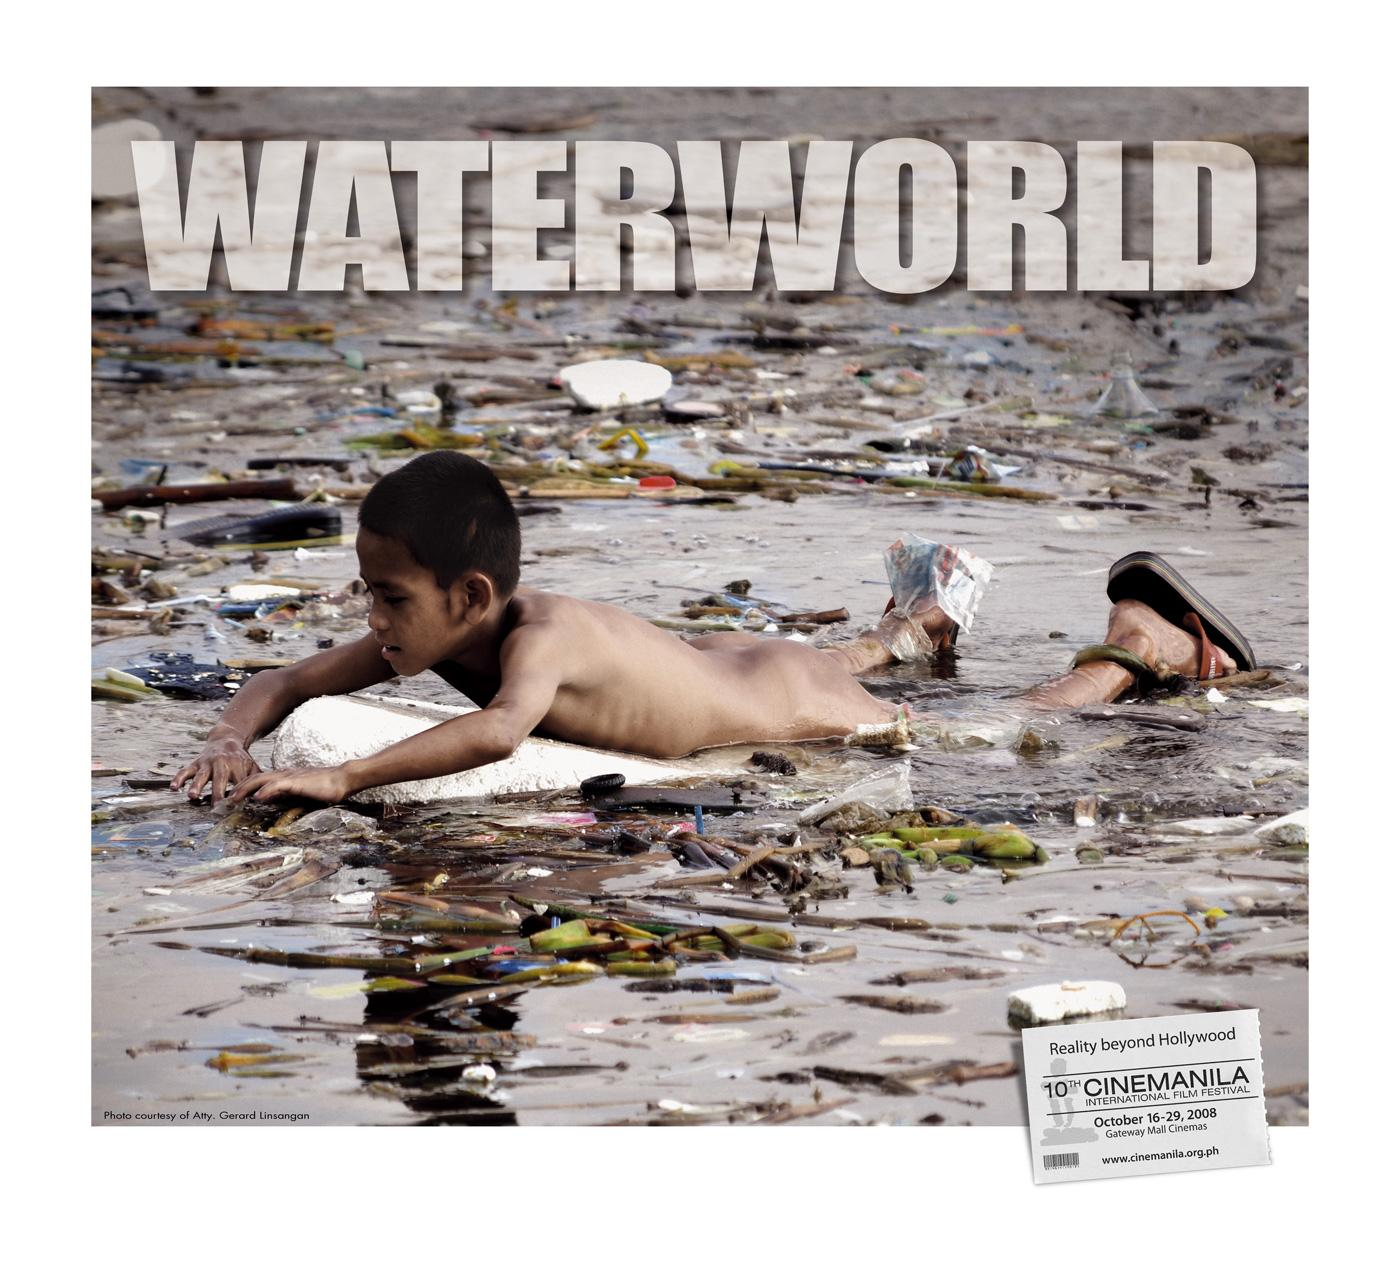 Cinemanila Print Ad -  Waterworld